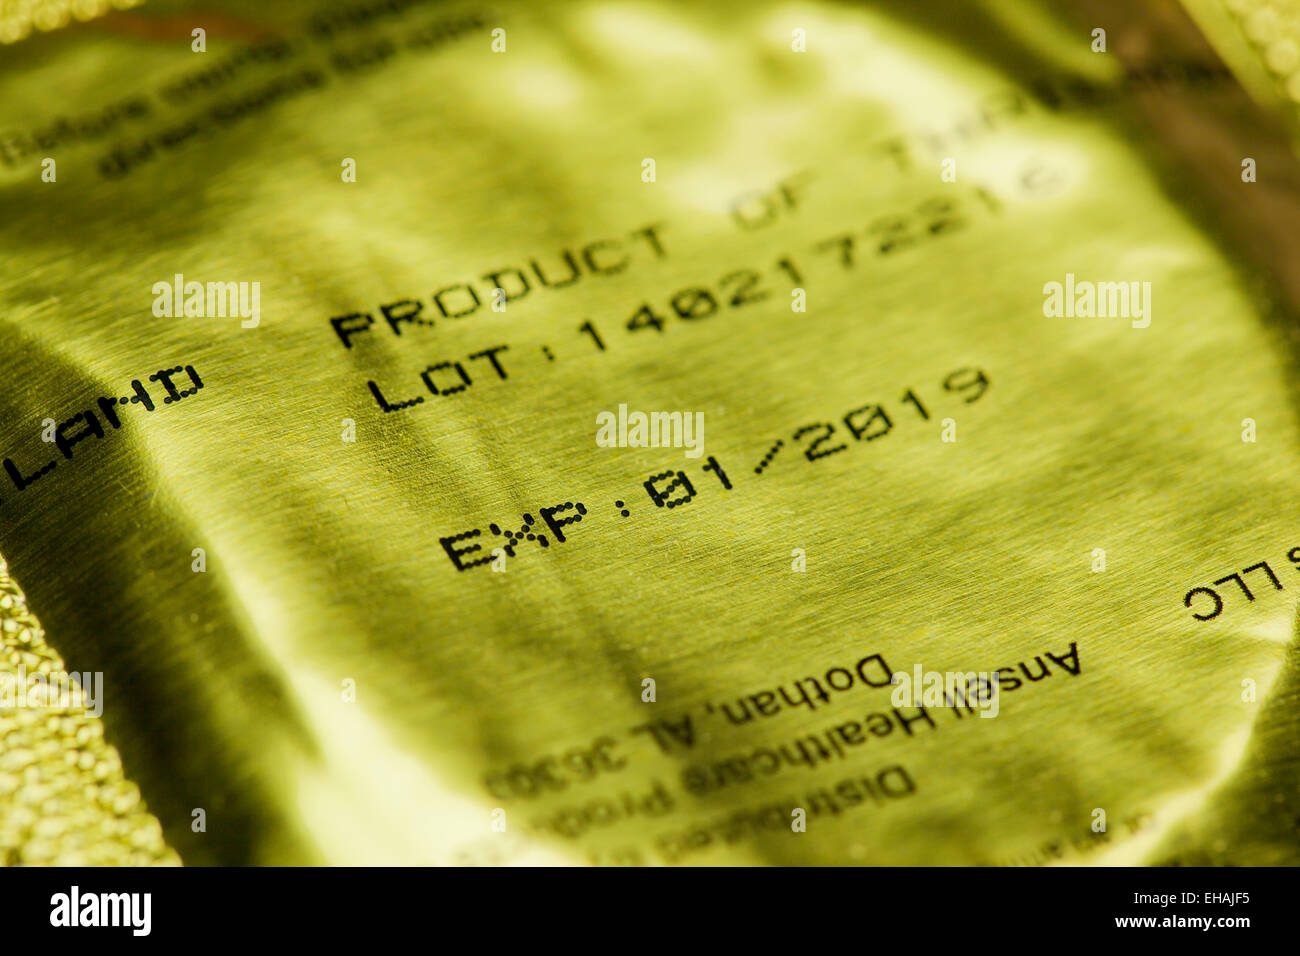 Expiration date on condom package - USA - Stock Image